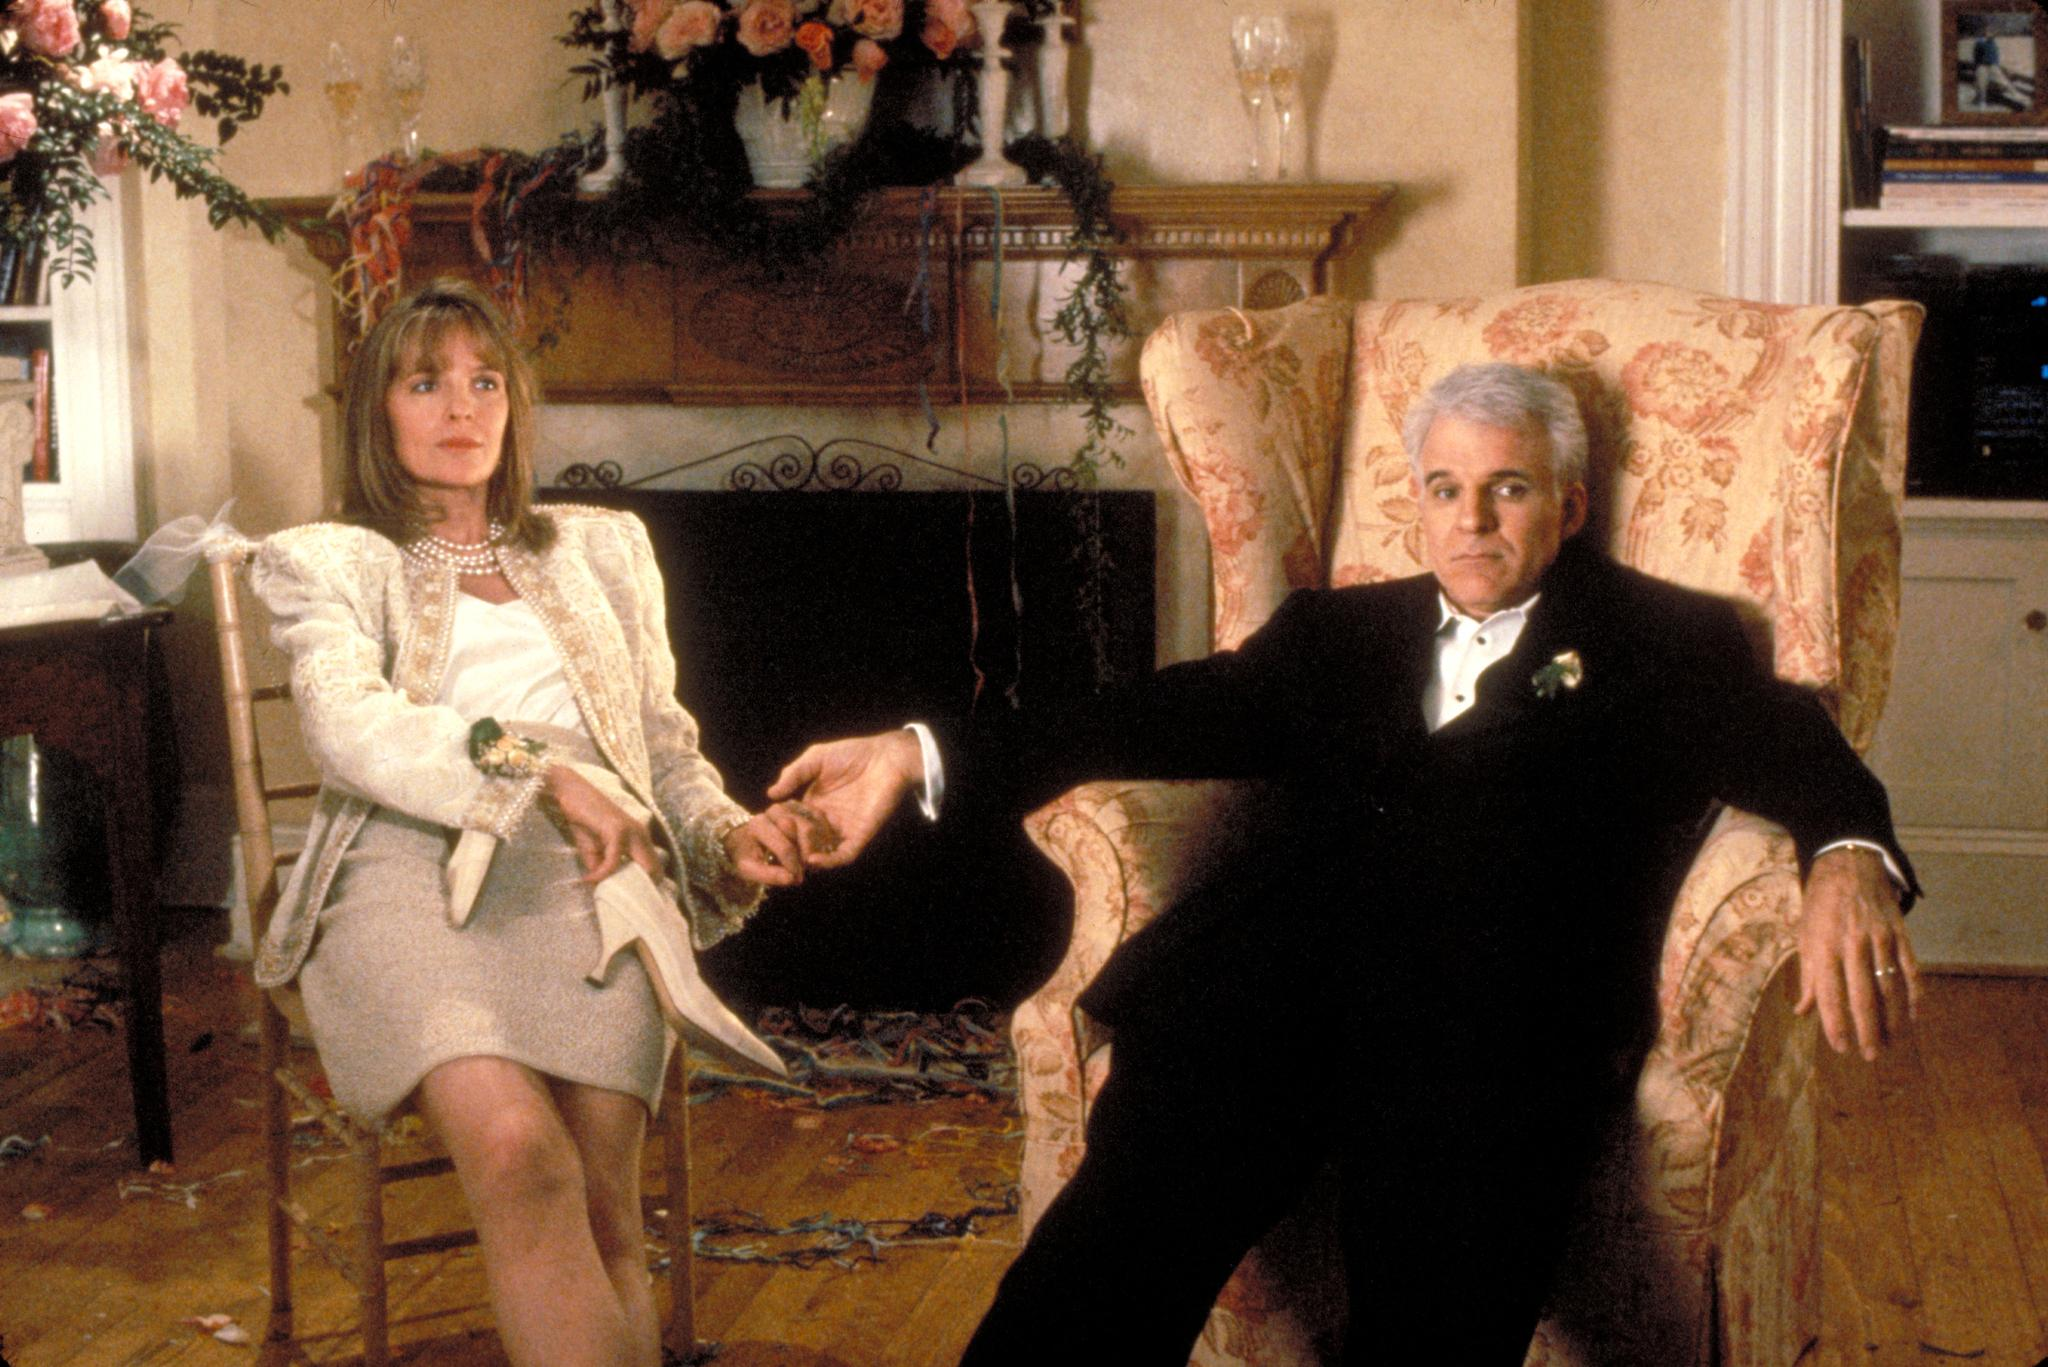 still-of-steve-martin-and-diane-keaton-in-tatal-miresei-1991-large-picture.jpg